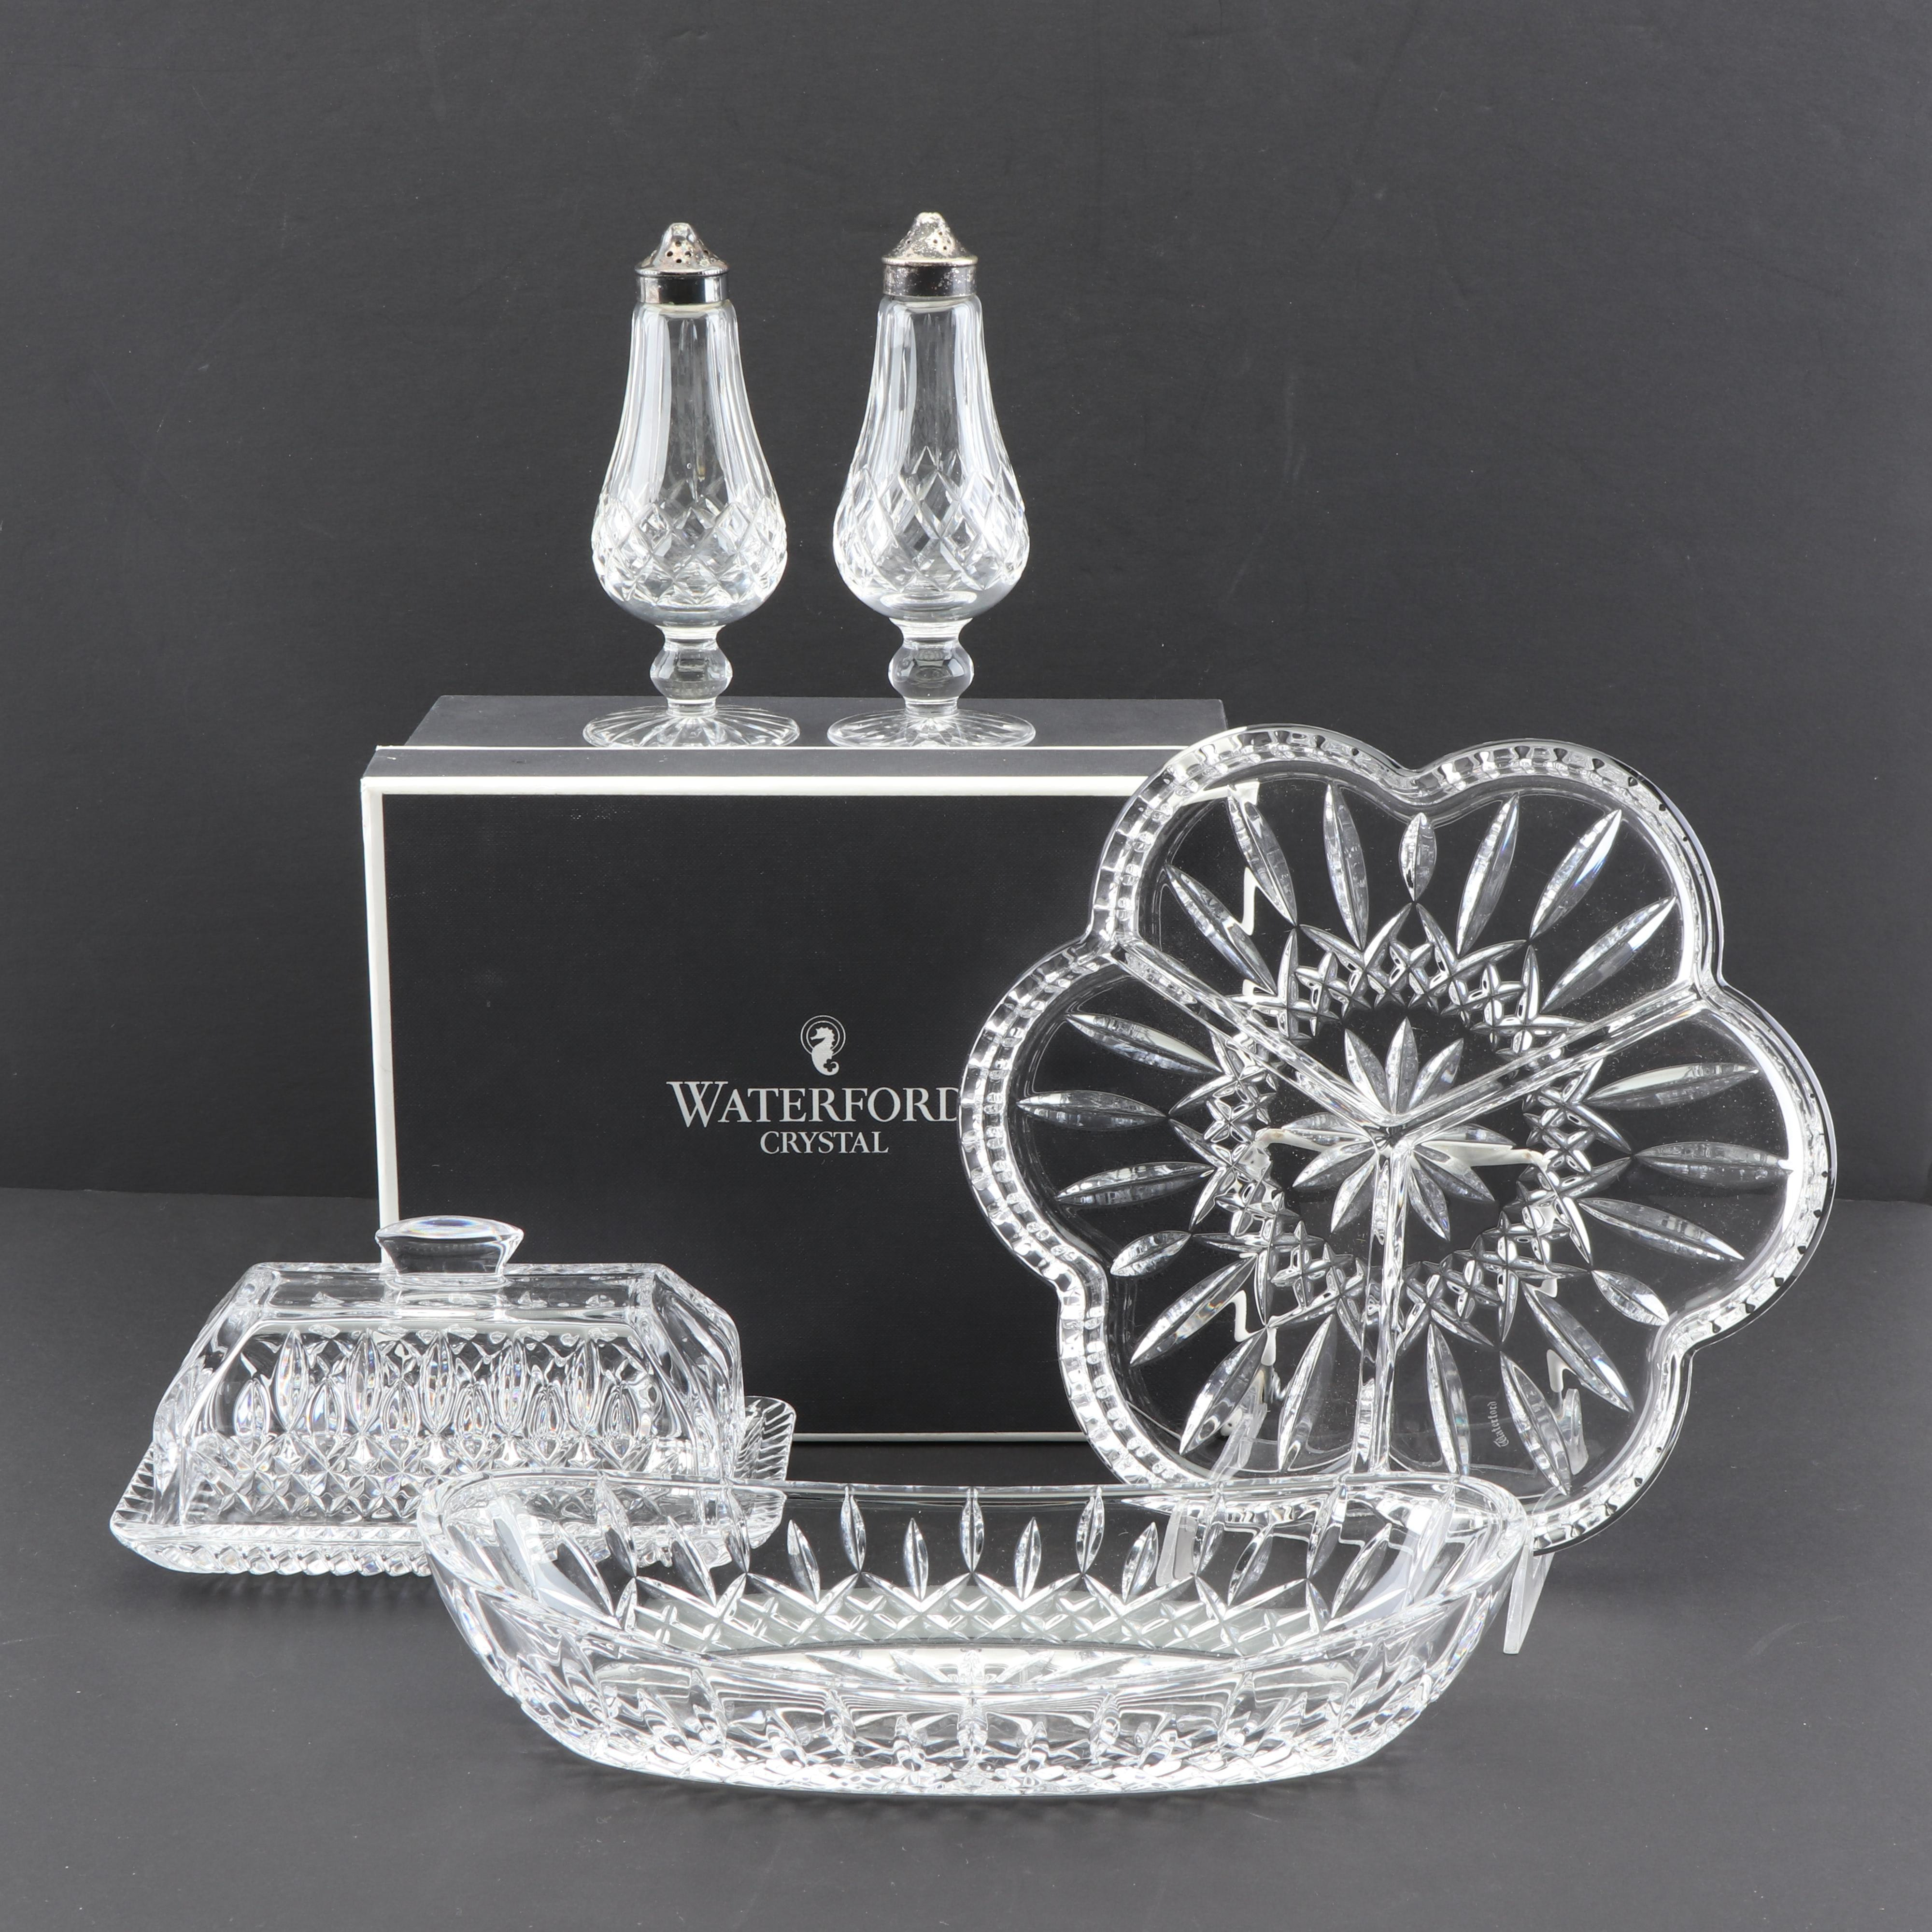 """Waterford Crystal """"Lismore"""" Celery Dish, Relish Dish, and Other Tableware"""